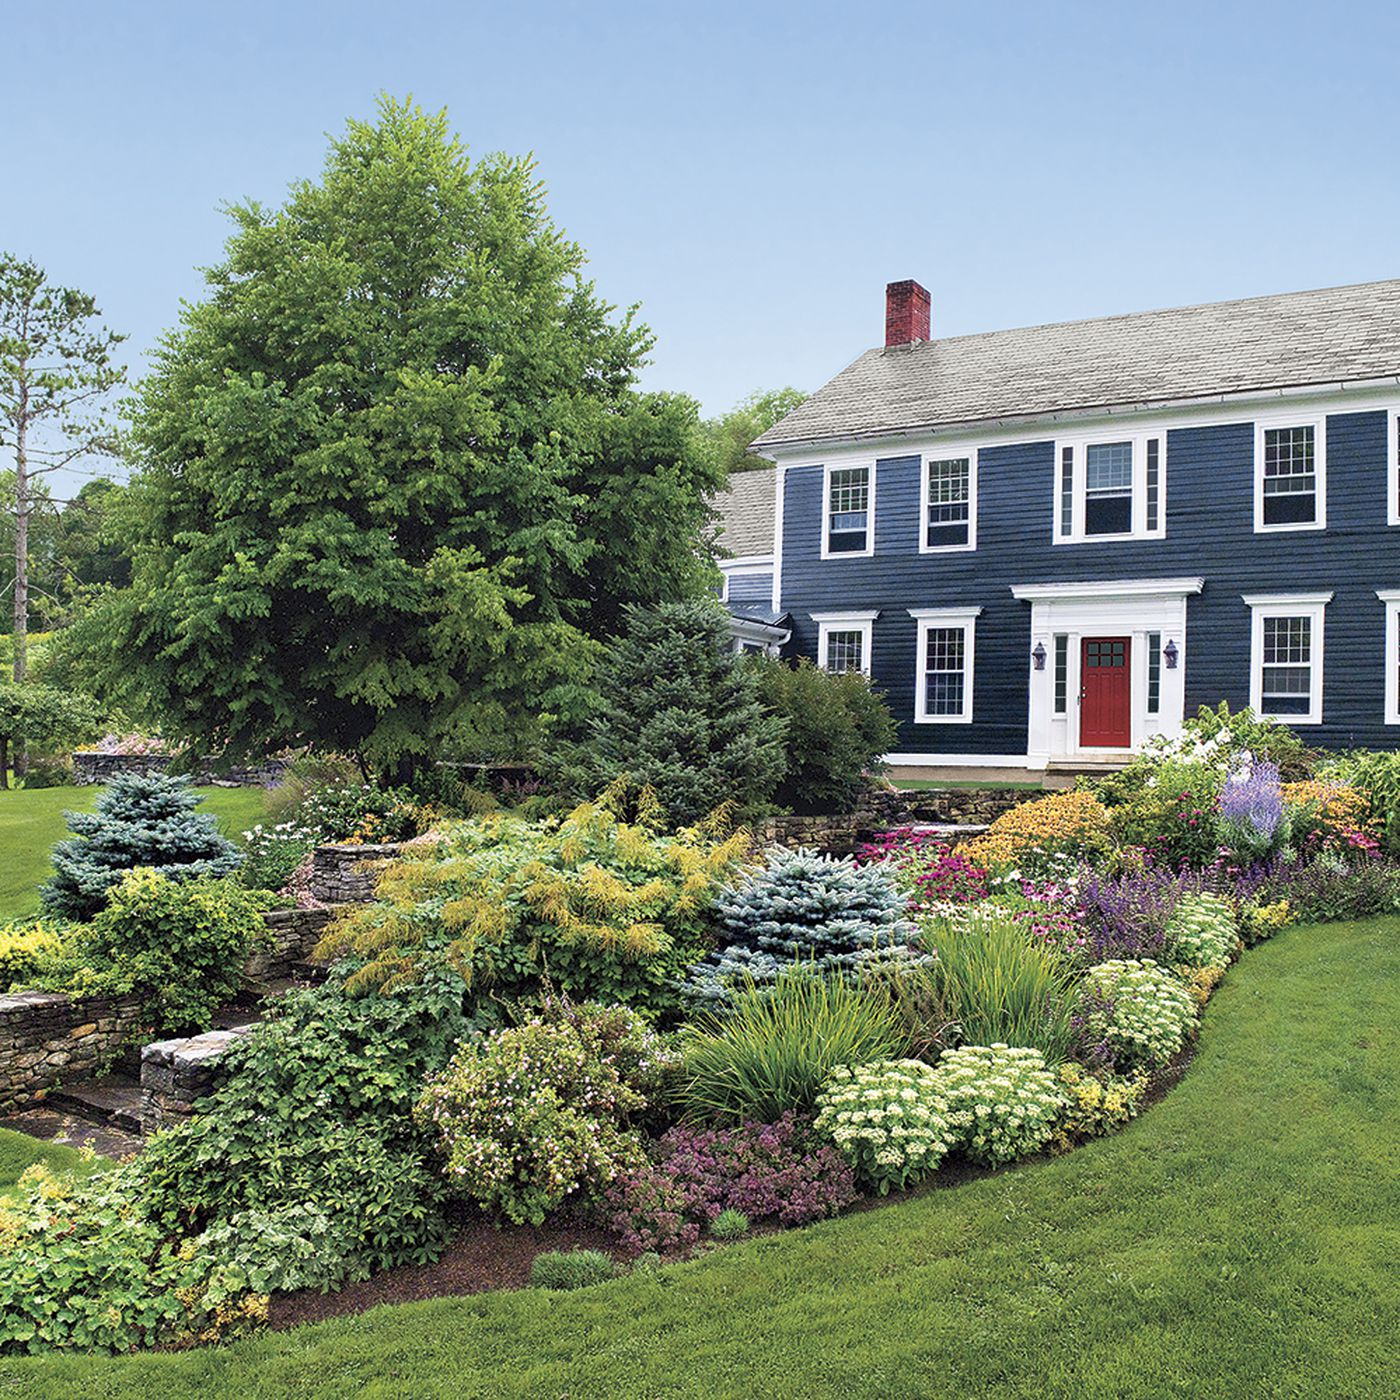 12 Upkeep Ideas To Add Curb Appeal This Old House